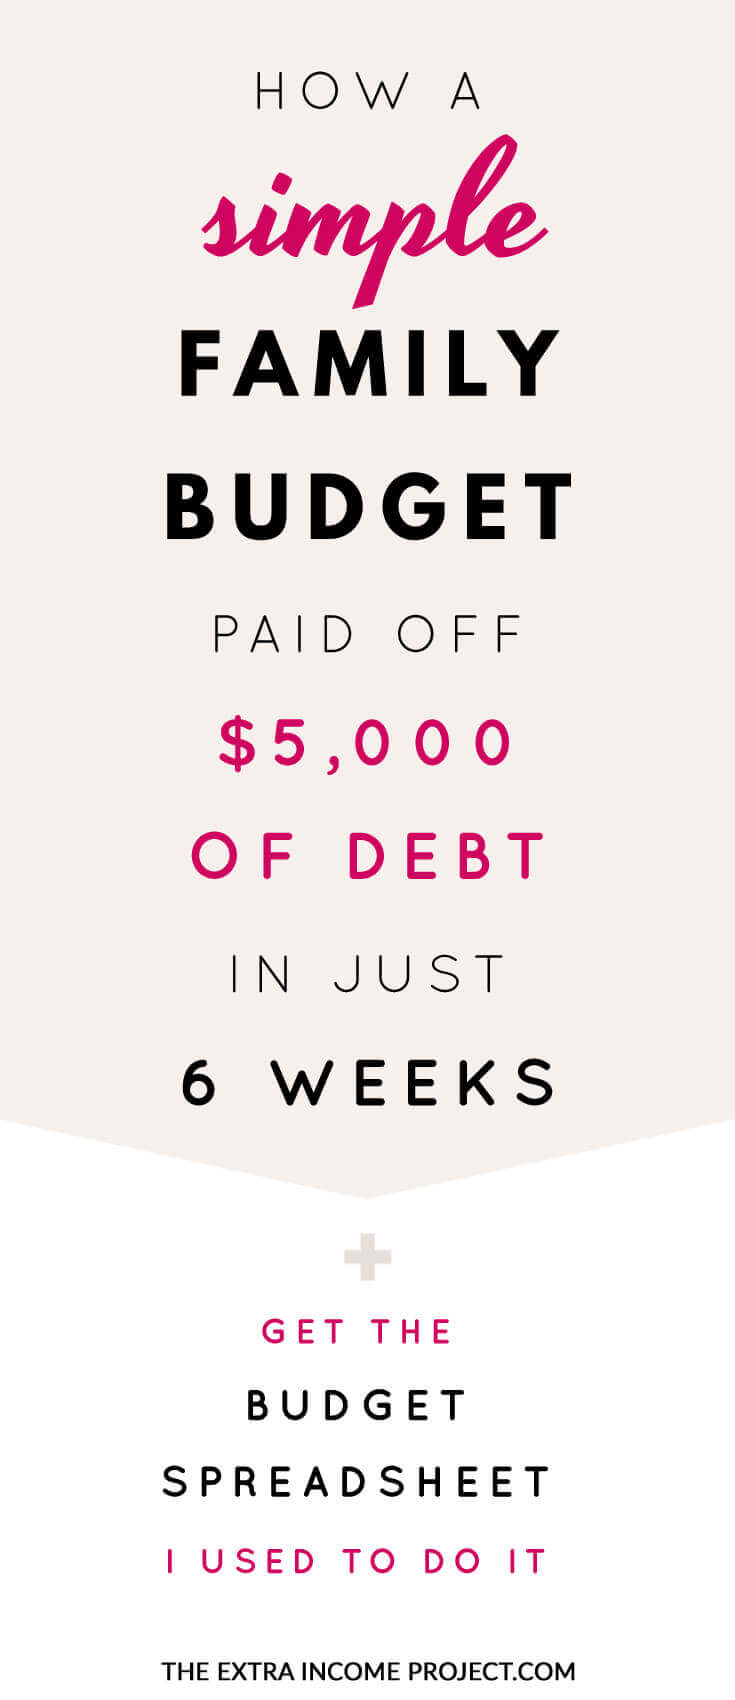 How A Simple Family Budget Paid Off 5000 Of Debt In 6 Weeks